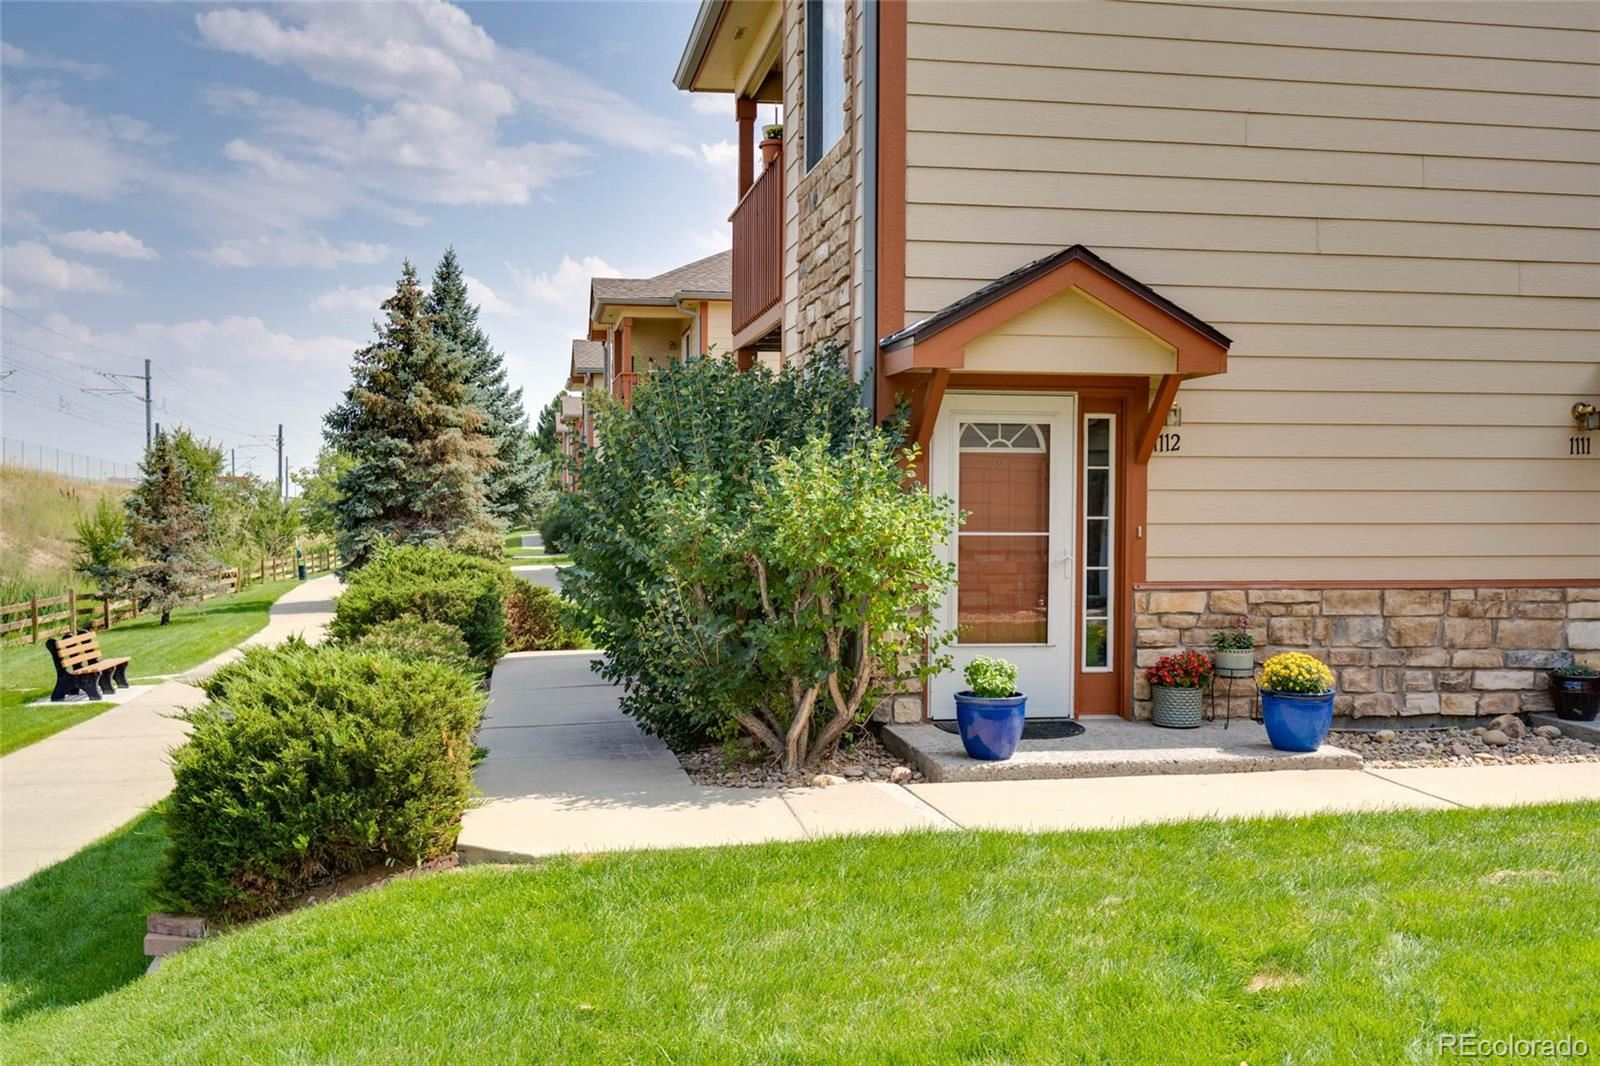 3251 E 103rd Place #1112, Thornton, CO 80229 - MLS#: 3698505